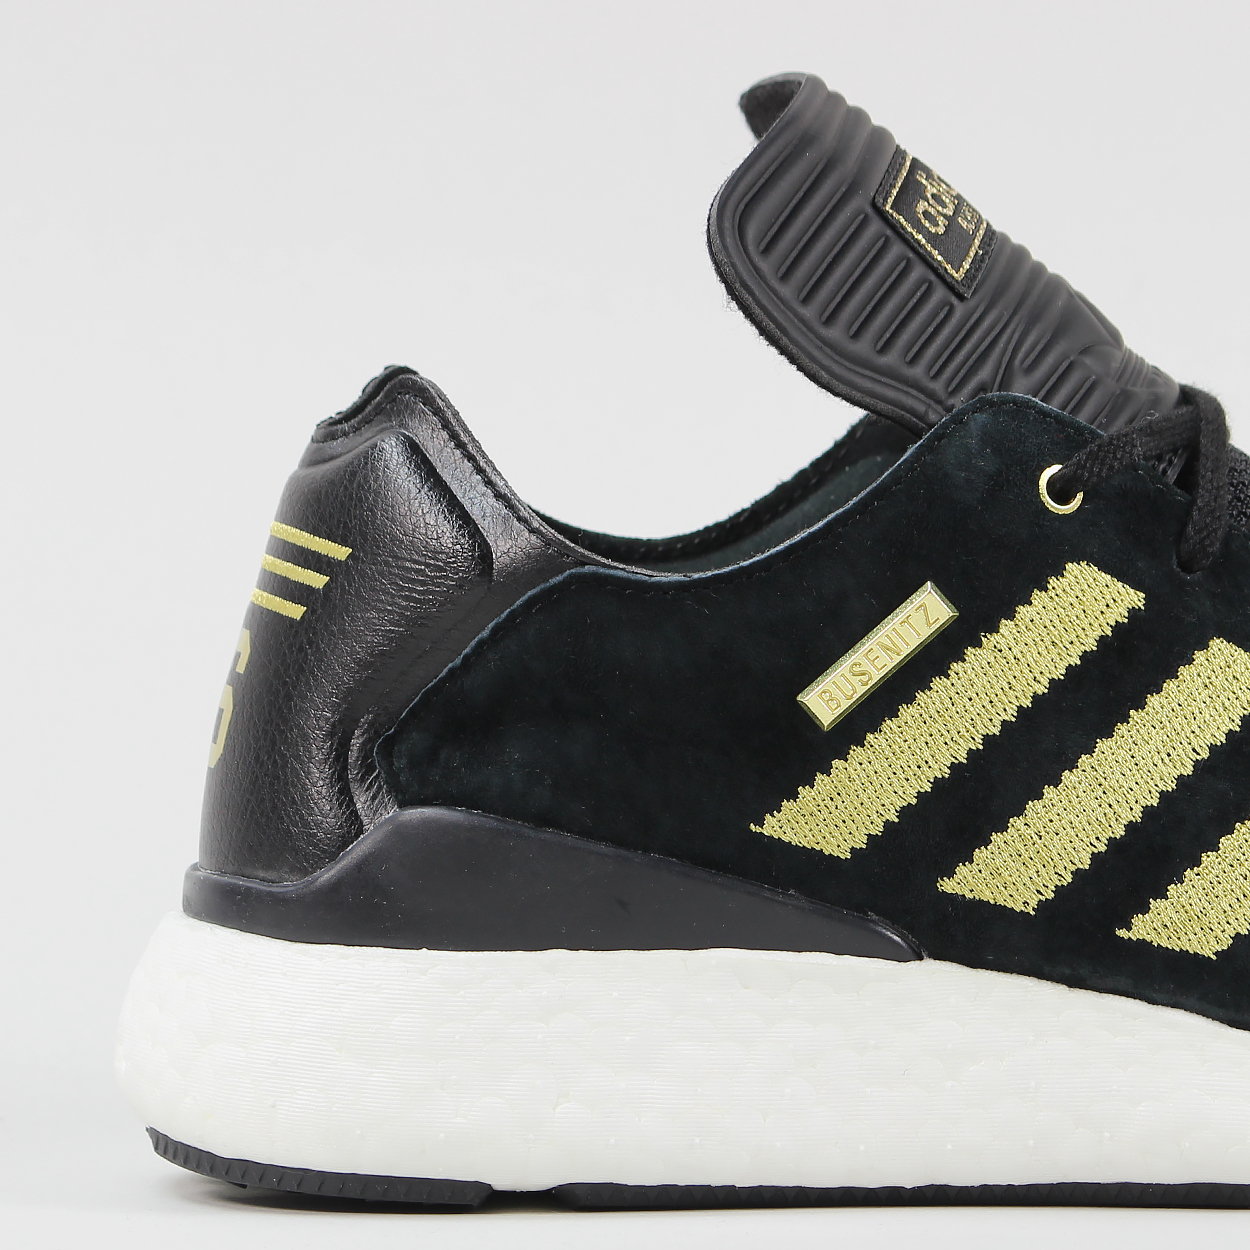 buy popular ddcec 0c545 Celebrating 10 wonderful years of the Adidas Busenitz shoe, this Pure Boost  is a delight! Suede uppers sat on Adidass Pure Boost sole.